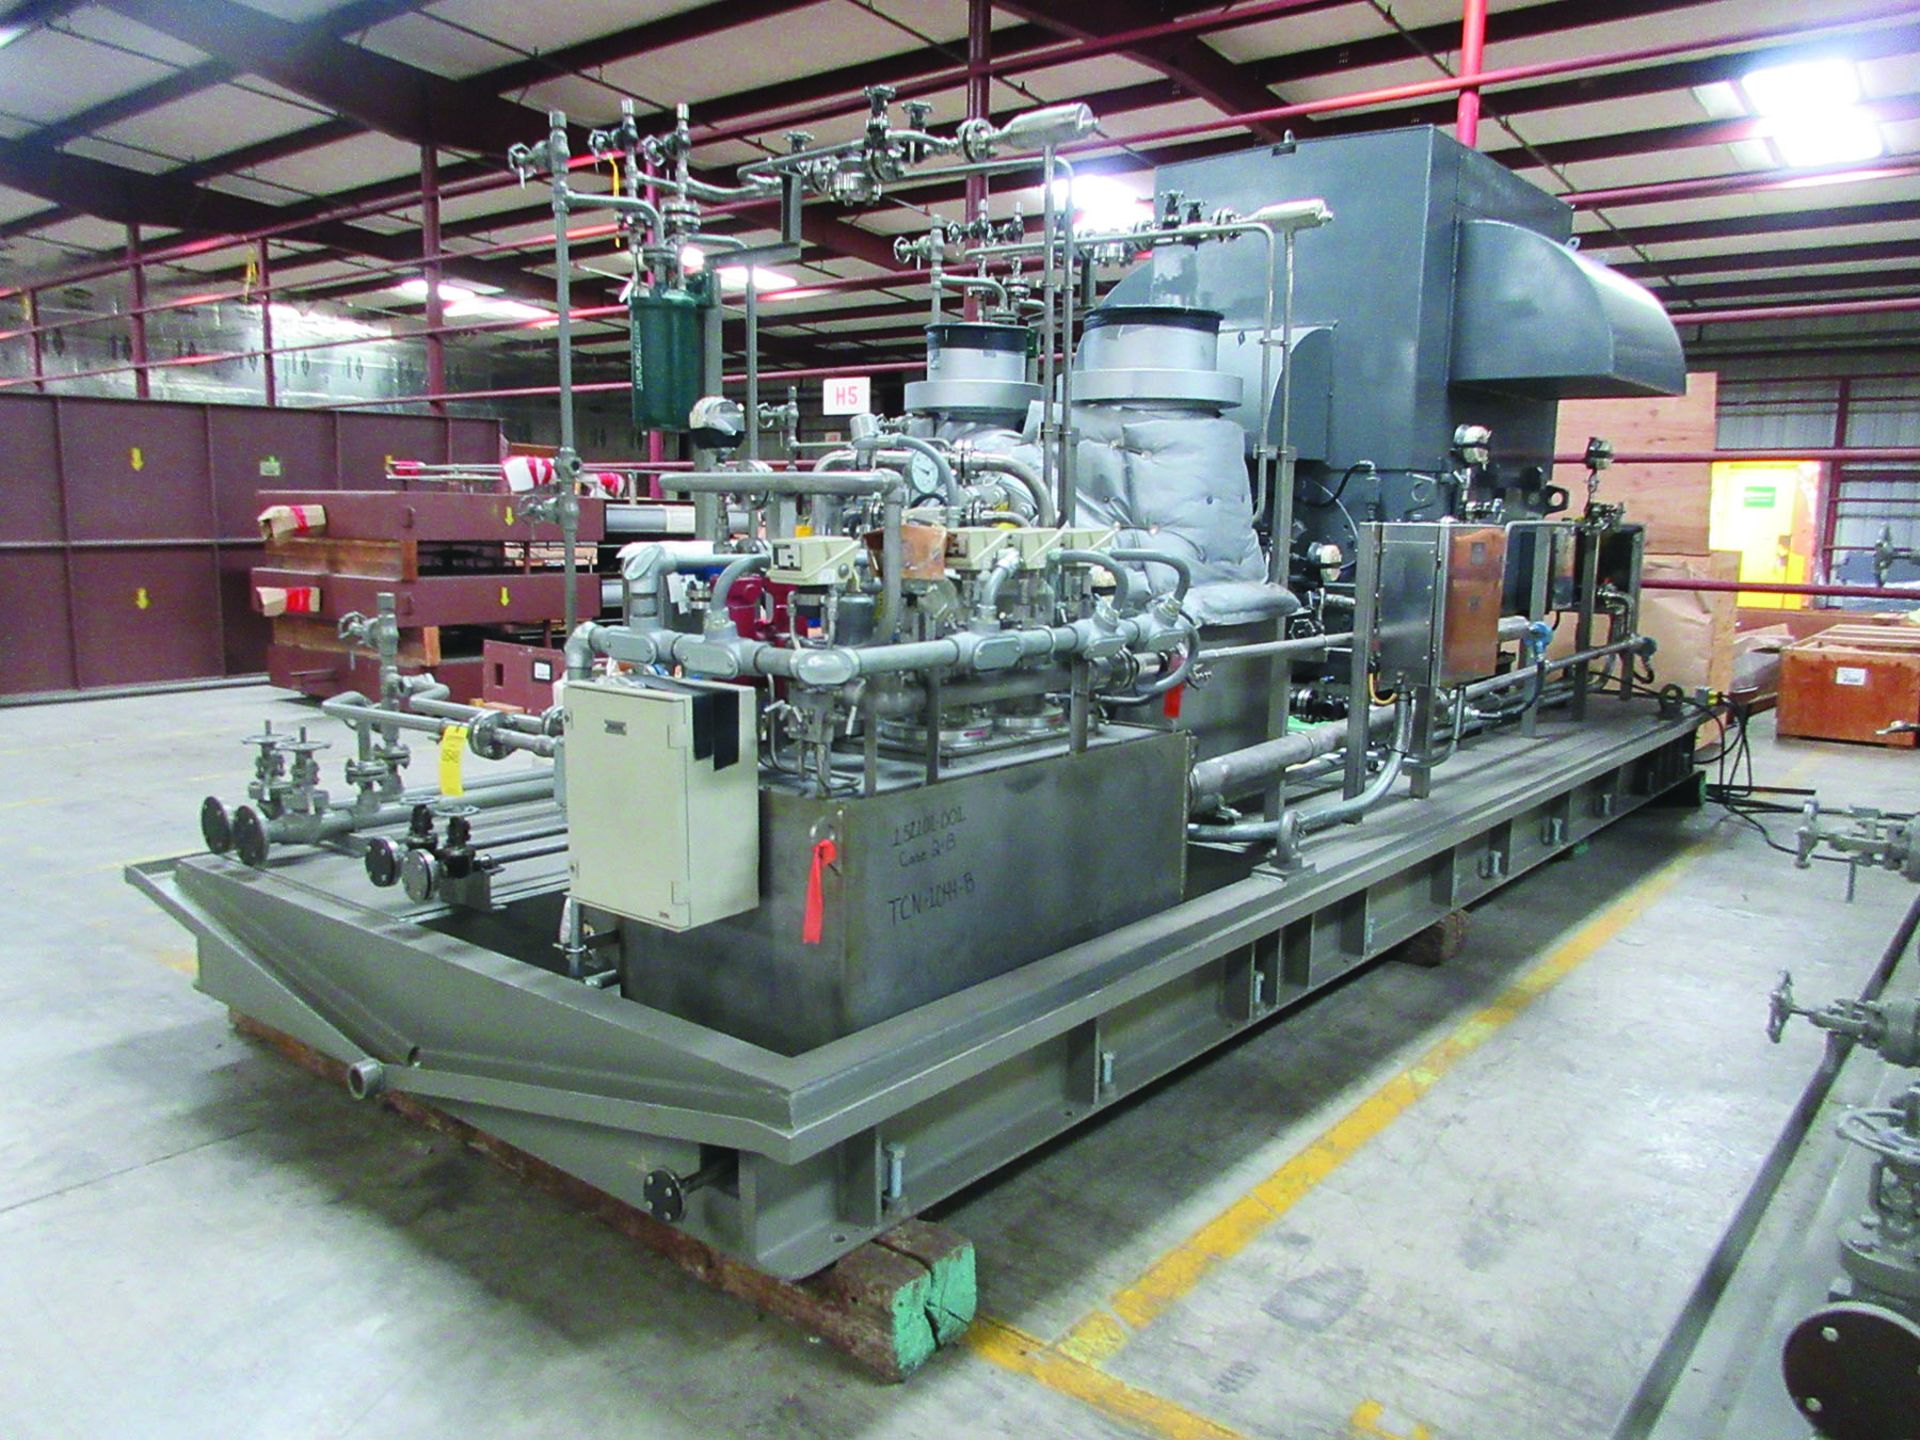 BOILER FEEDWATER BOOSTER PUMP SLED, GE 3,000 HP INDUCTION MOTOR 3585 RPM, 6600 VOLTS, 8313S FRAME, - Image 2 of 11